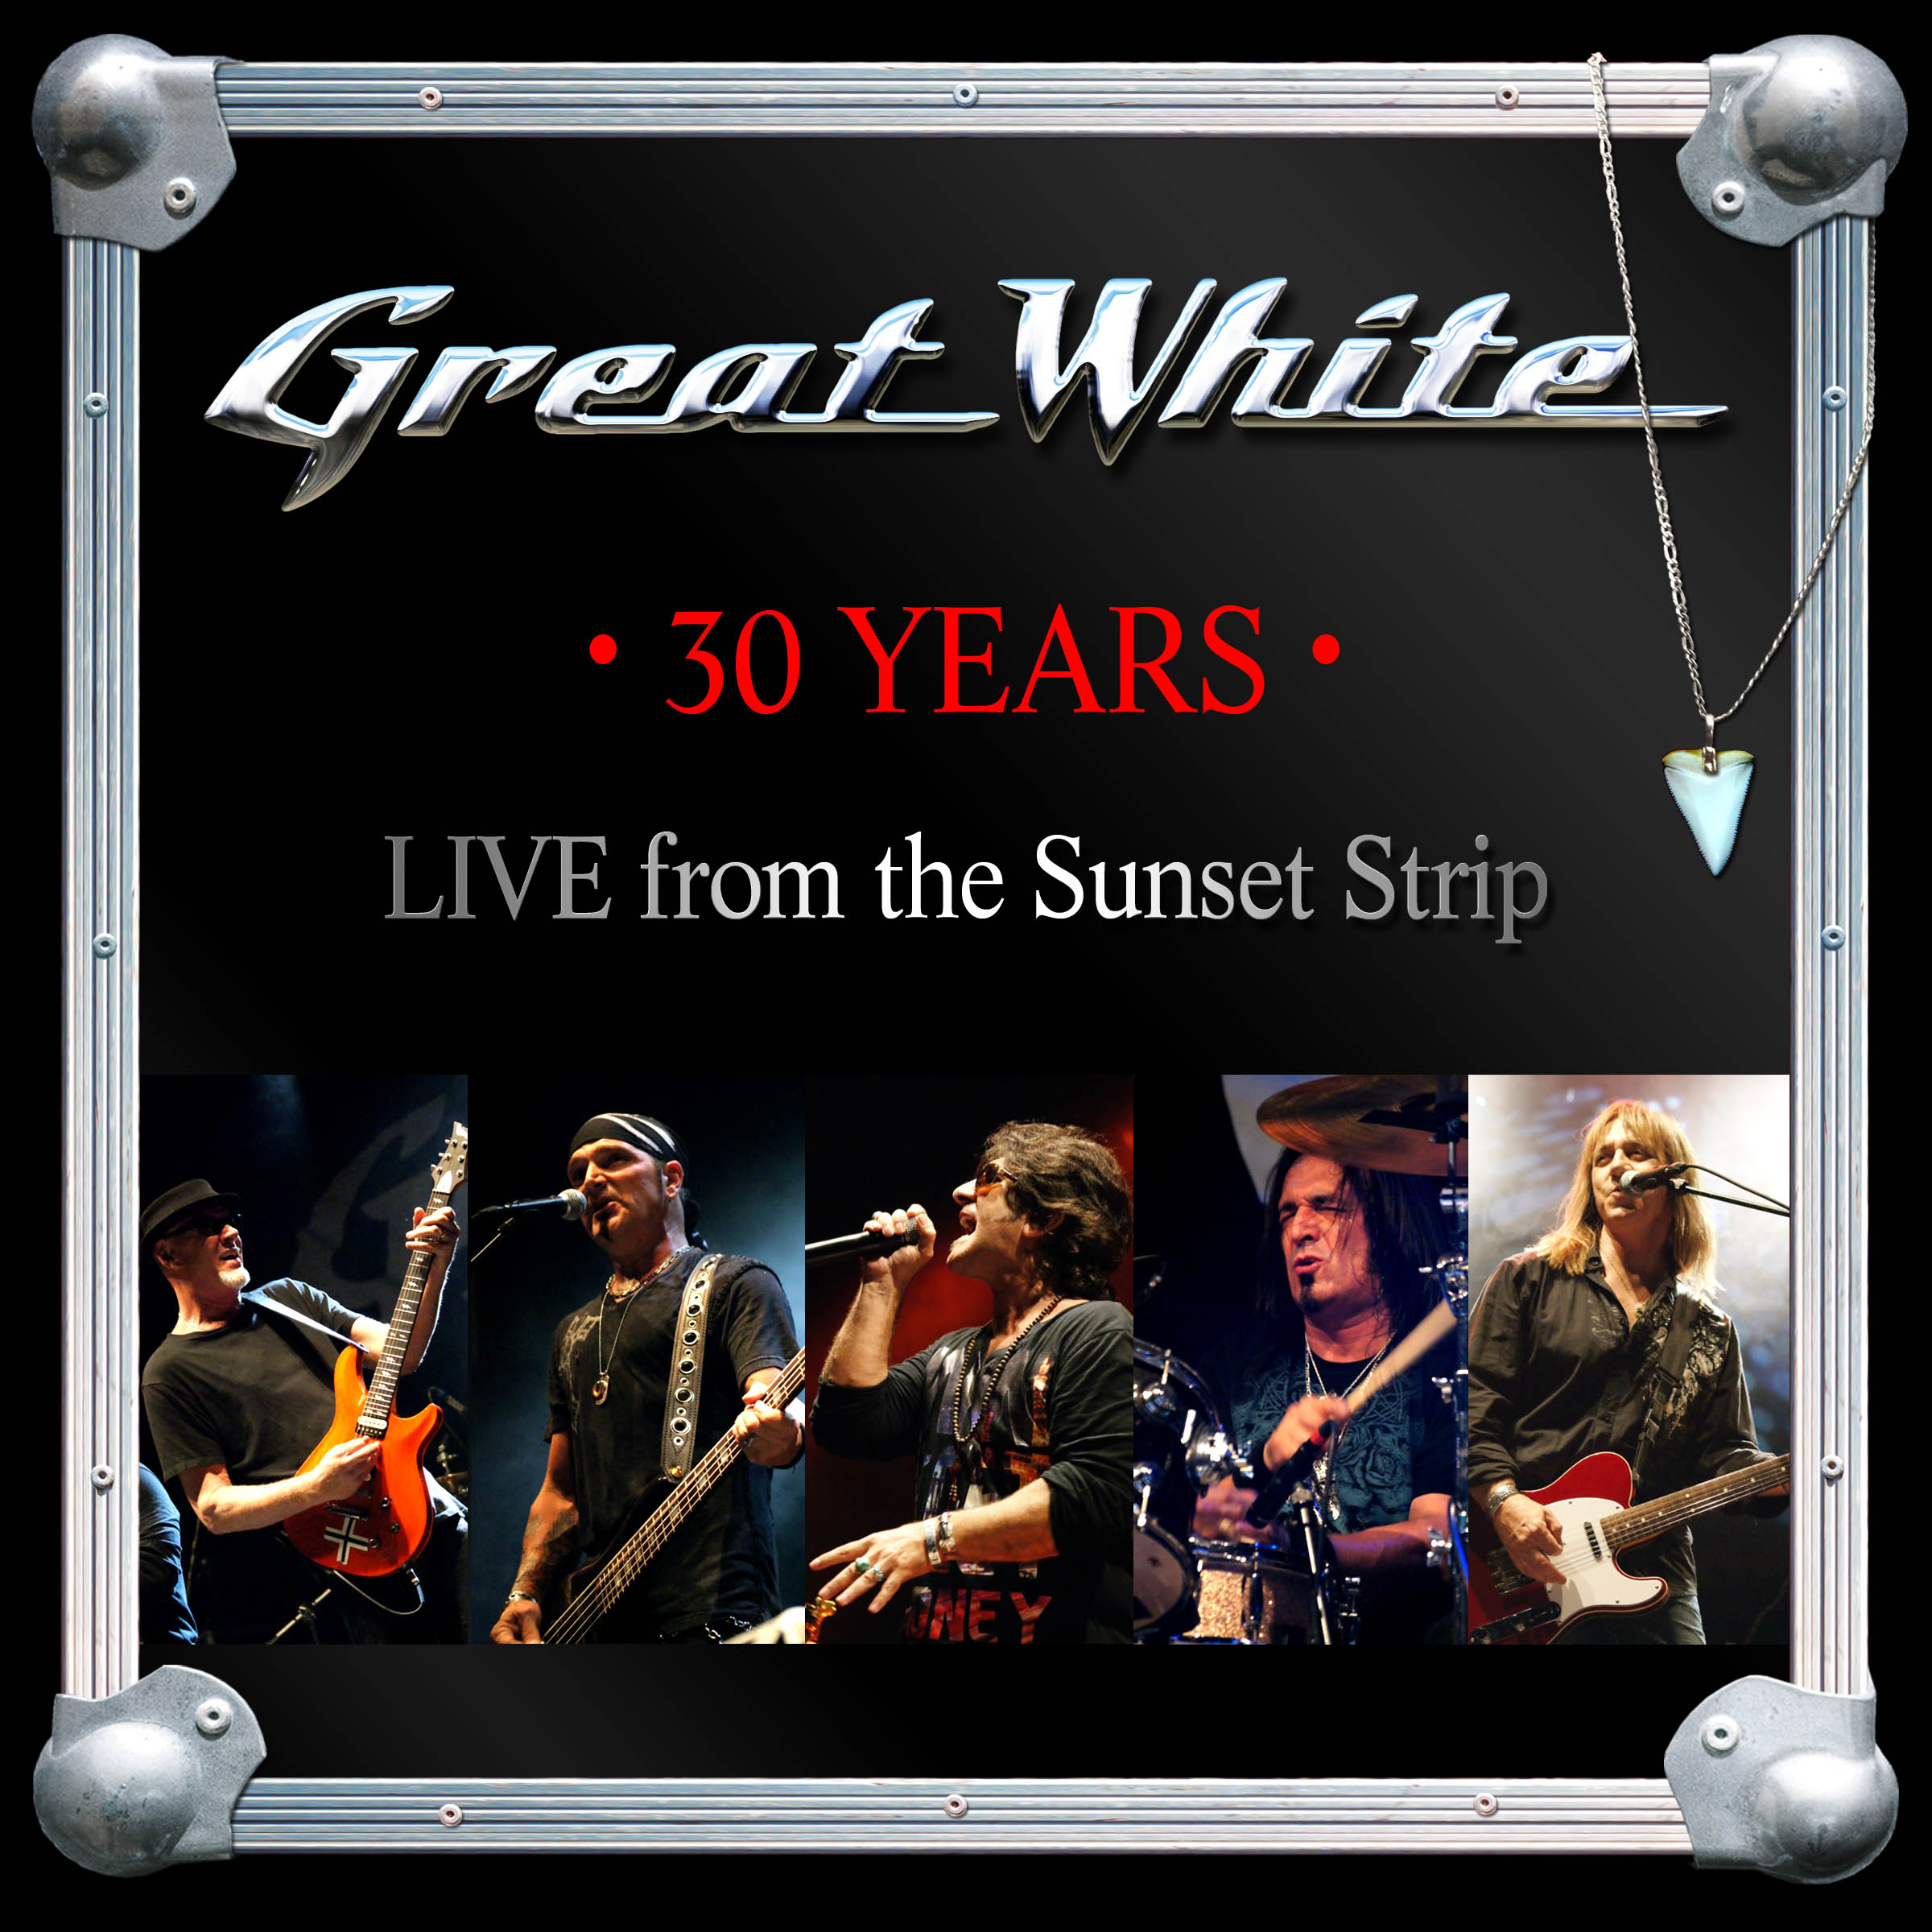 Great White 30 Years Live From The Sunset Strip Review